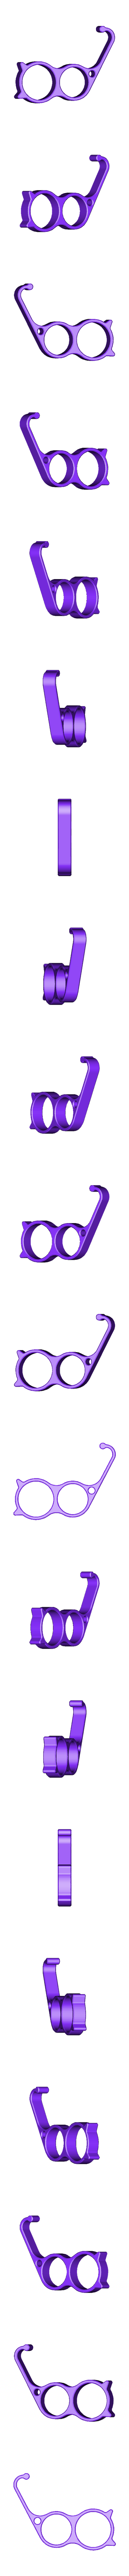 ex_finger_cat3.stl Download free STL file SIXTH CATFINGER • 3D printer template, lourdesveram